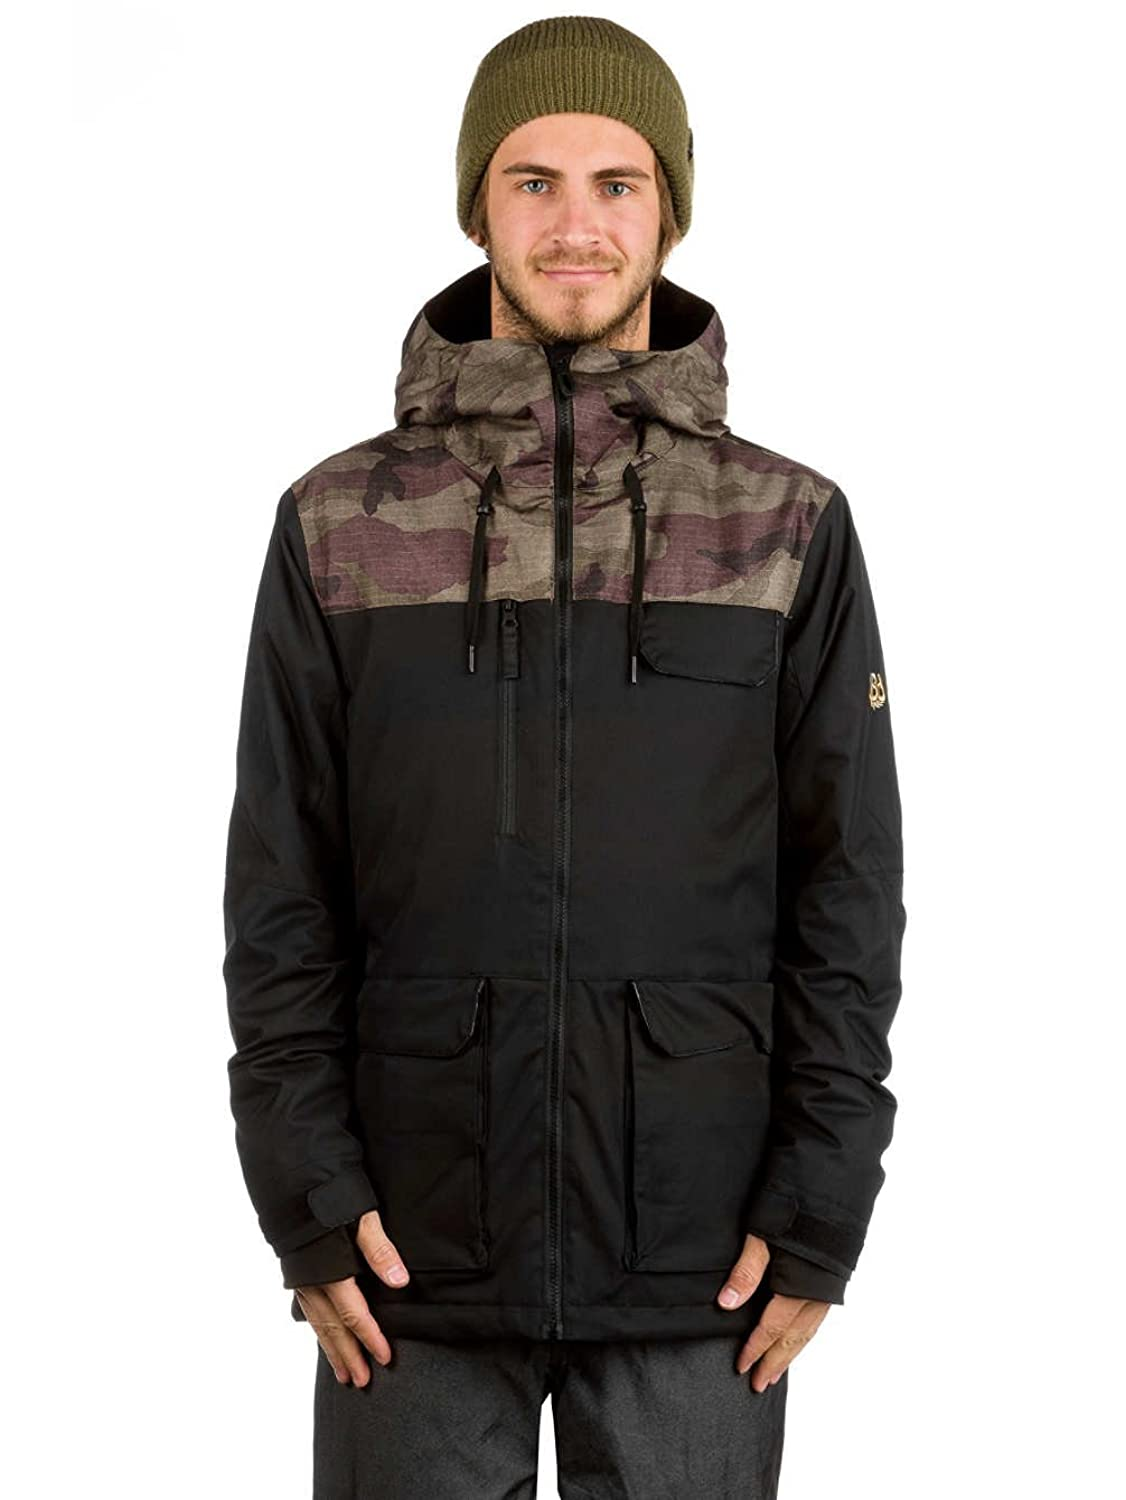 686 OUTERWEAR メンズ B072RPC7WH L